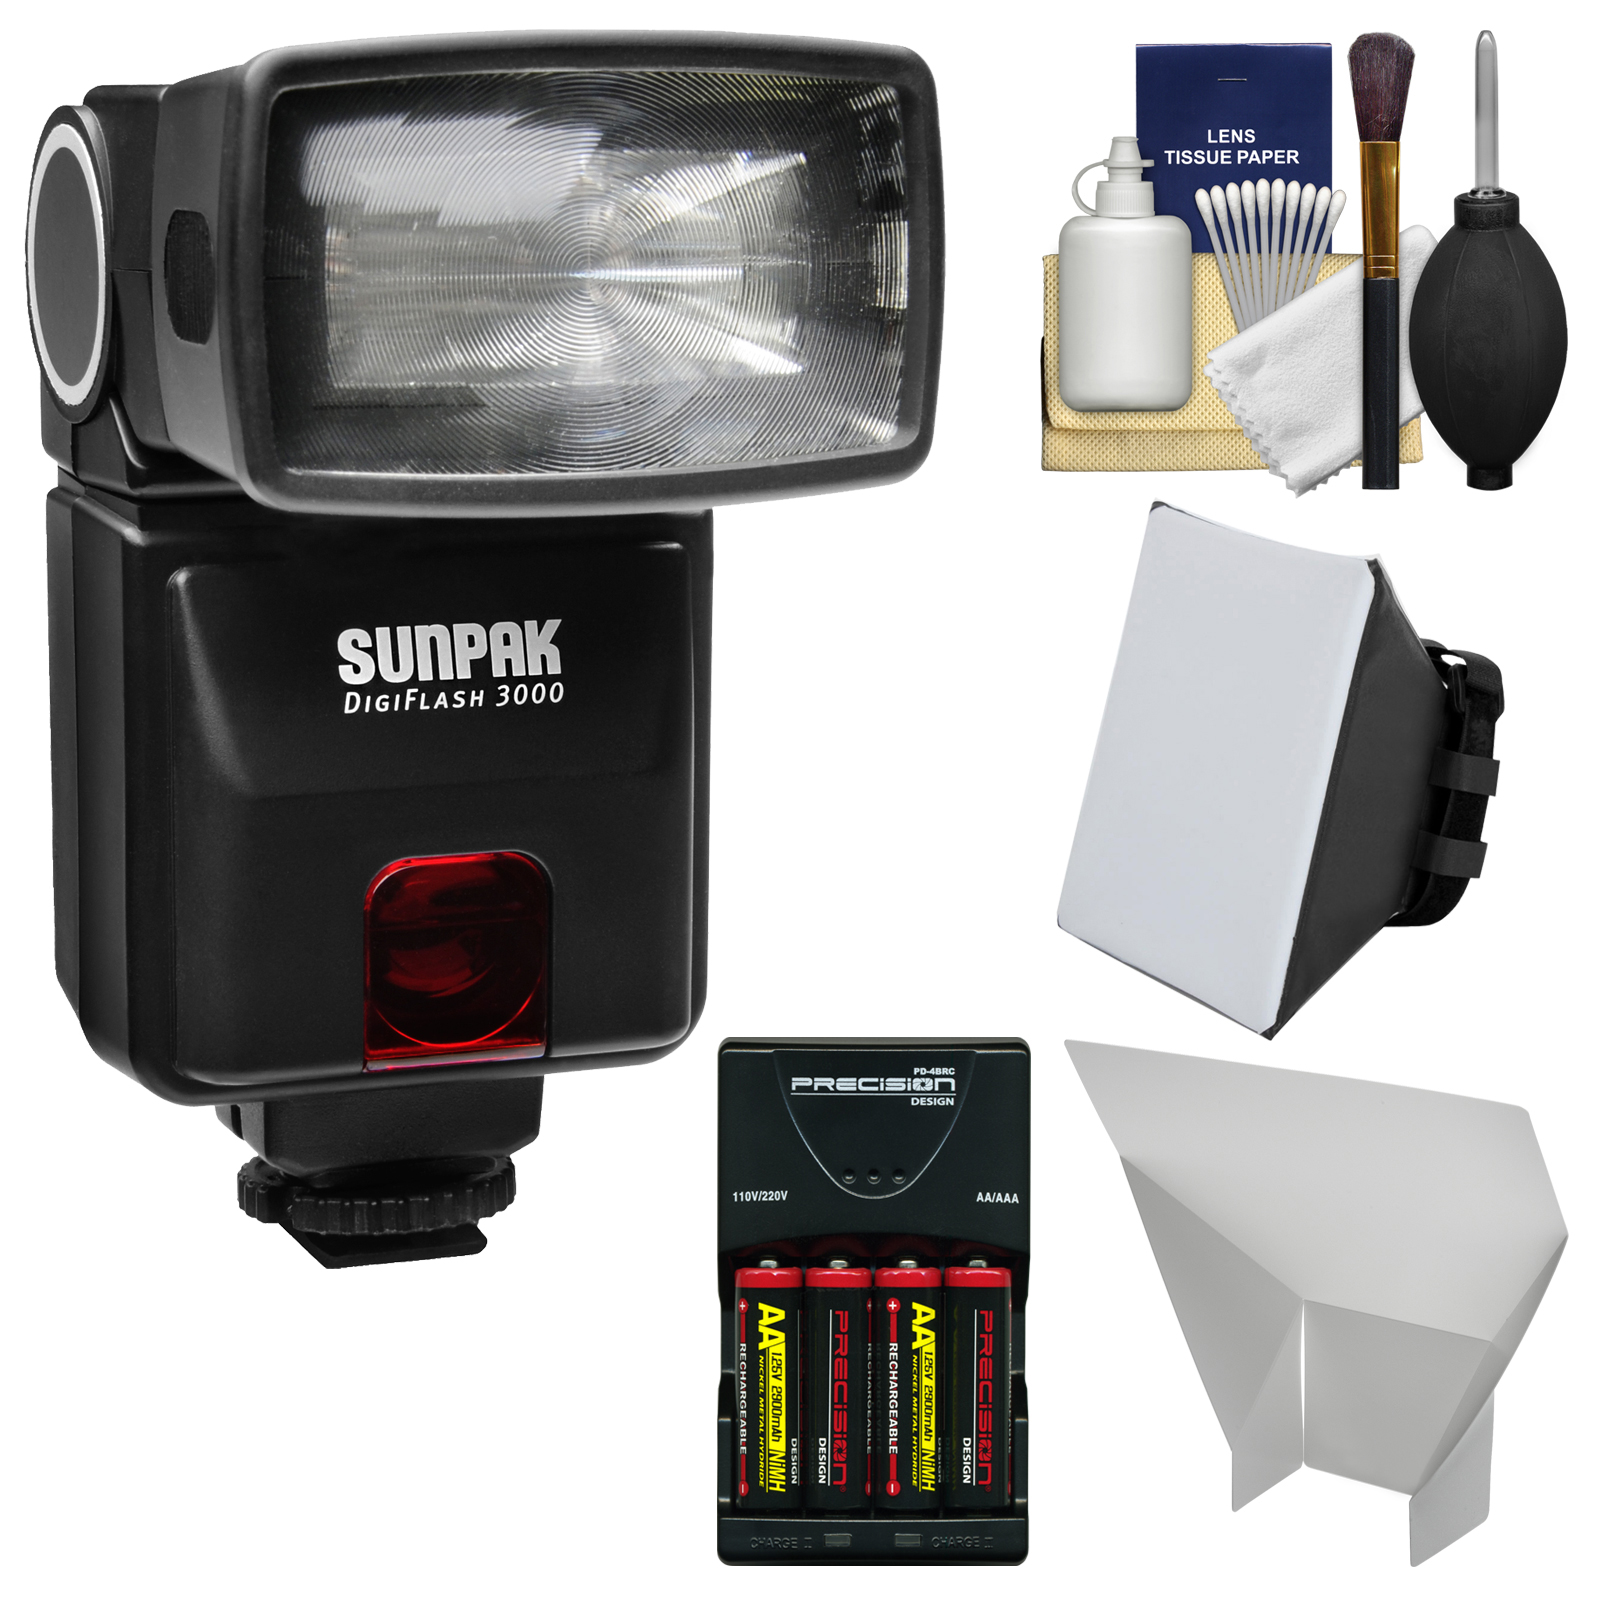 Sunpak DigiFlash 3000 iTTL Flash + Batteries/Charger + Soft Box + Bounce Reflector Kit for Nikon D3200, D3300, D5200, D5300, D5500, D7100 Camera